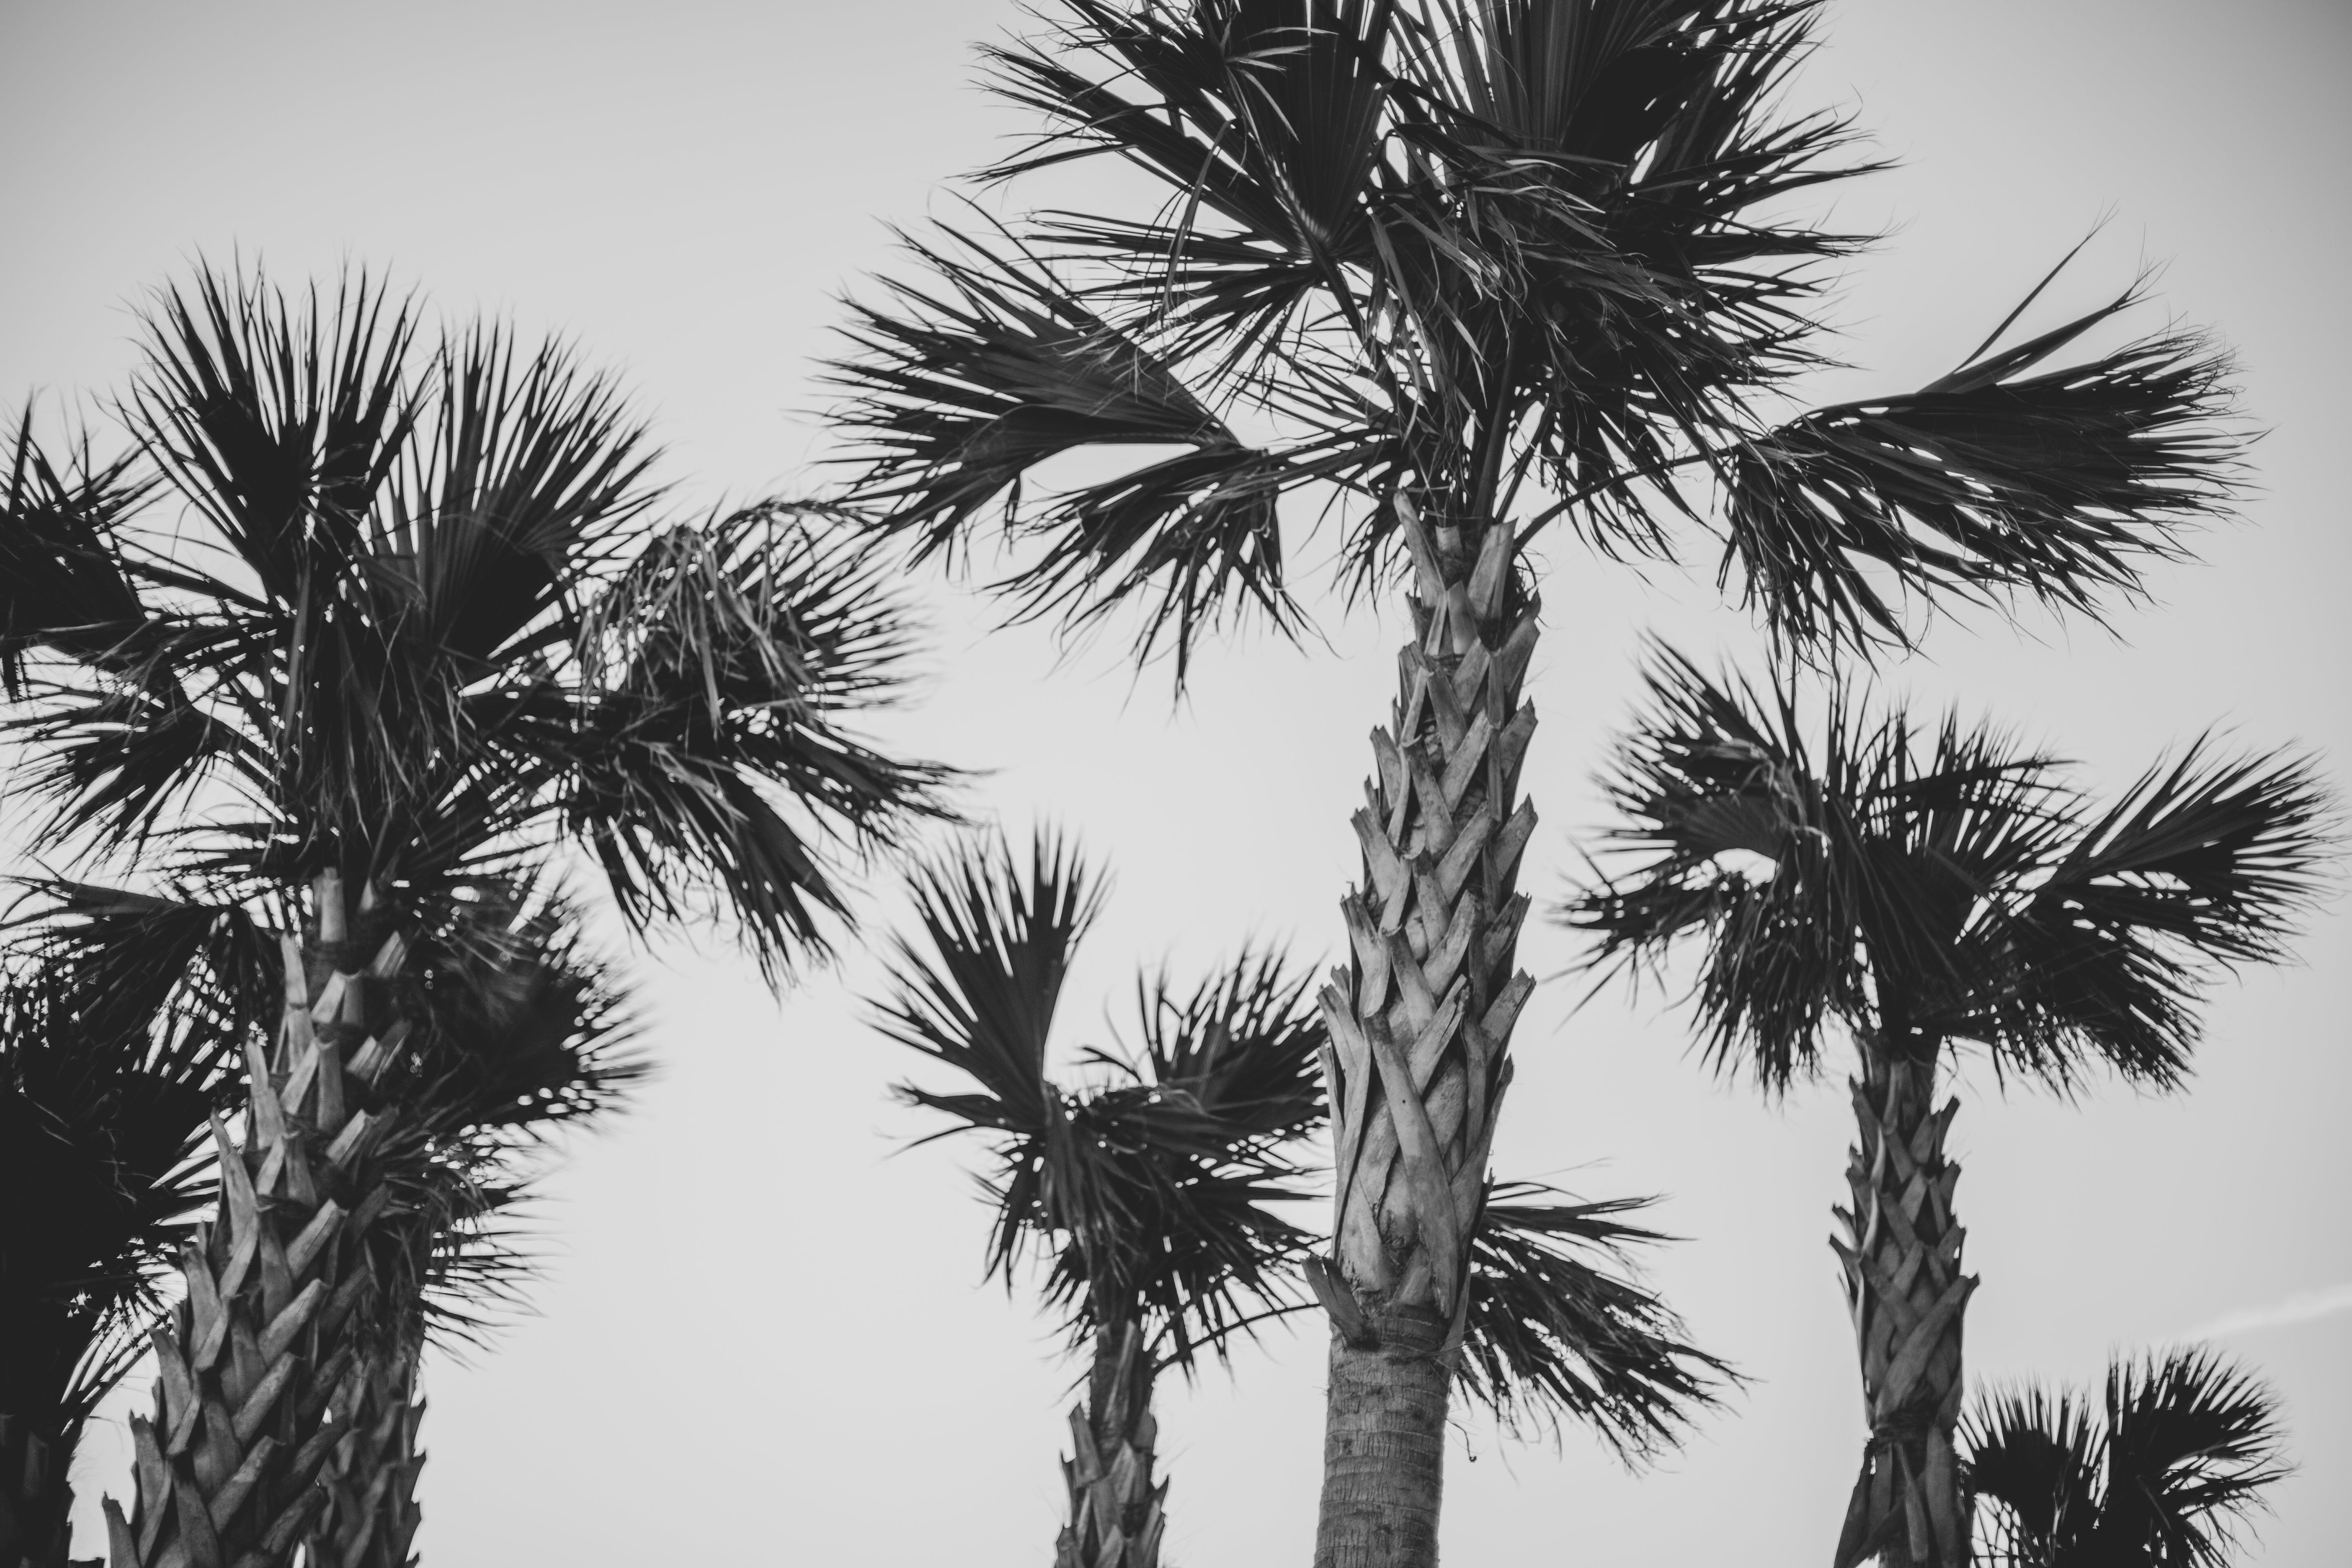 Free stock photo of palm trees